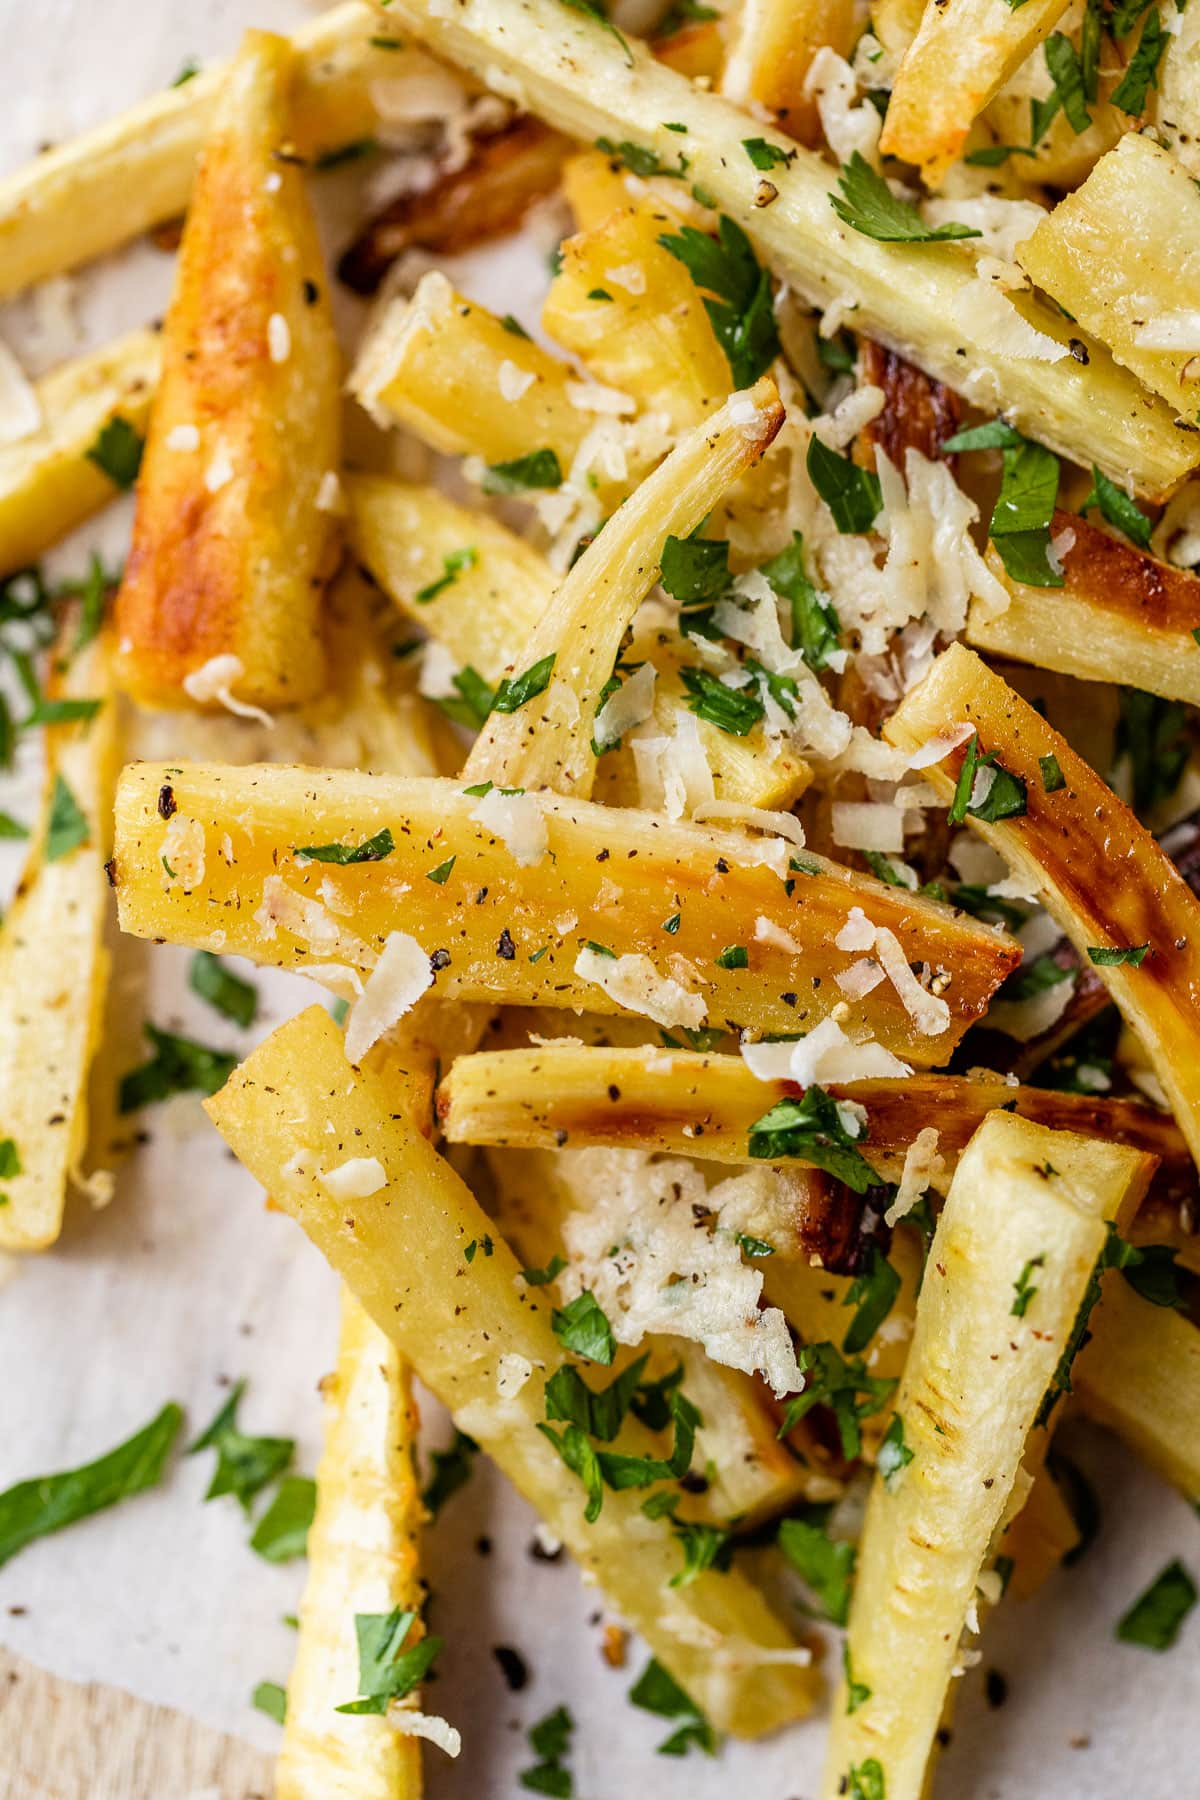 Parsnip Fries baked in the oven on a sheet of parchment paper garnished with parmesan and herbs